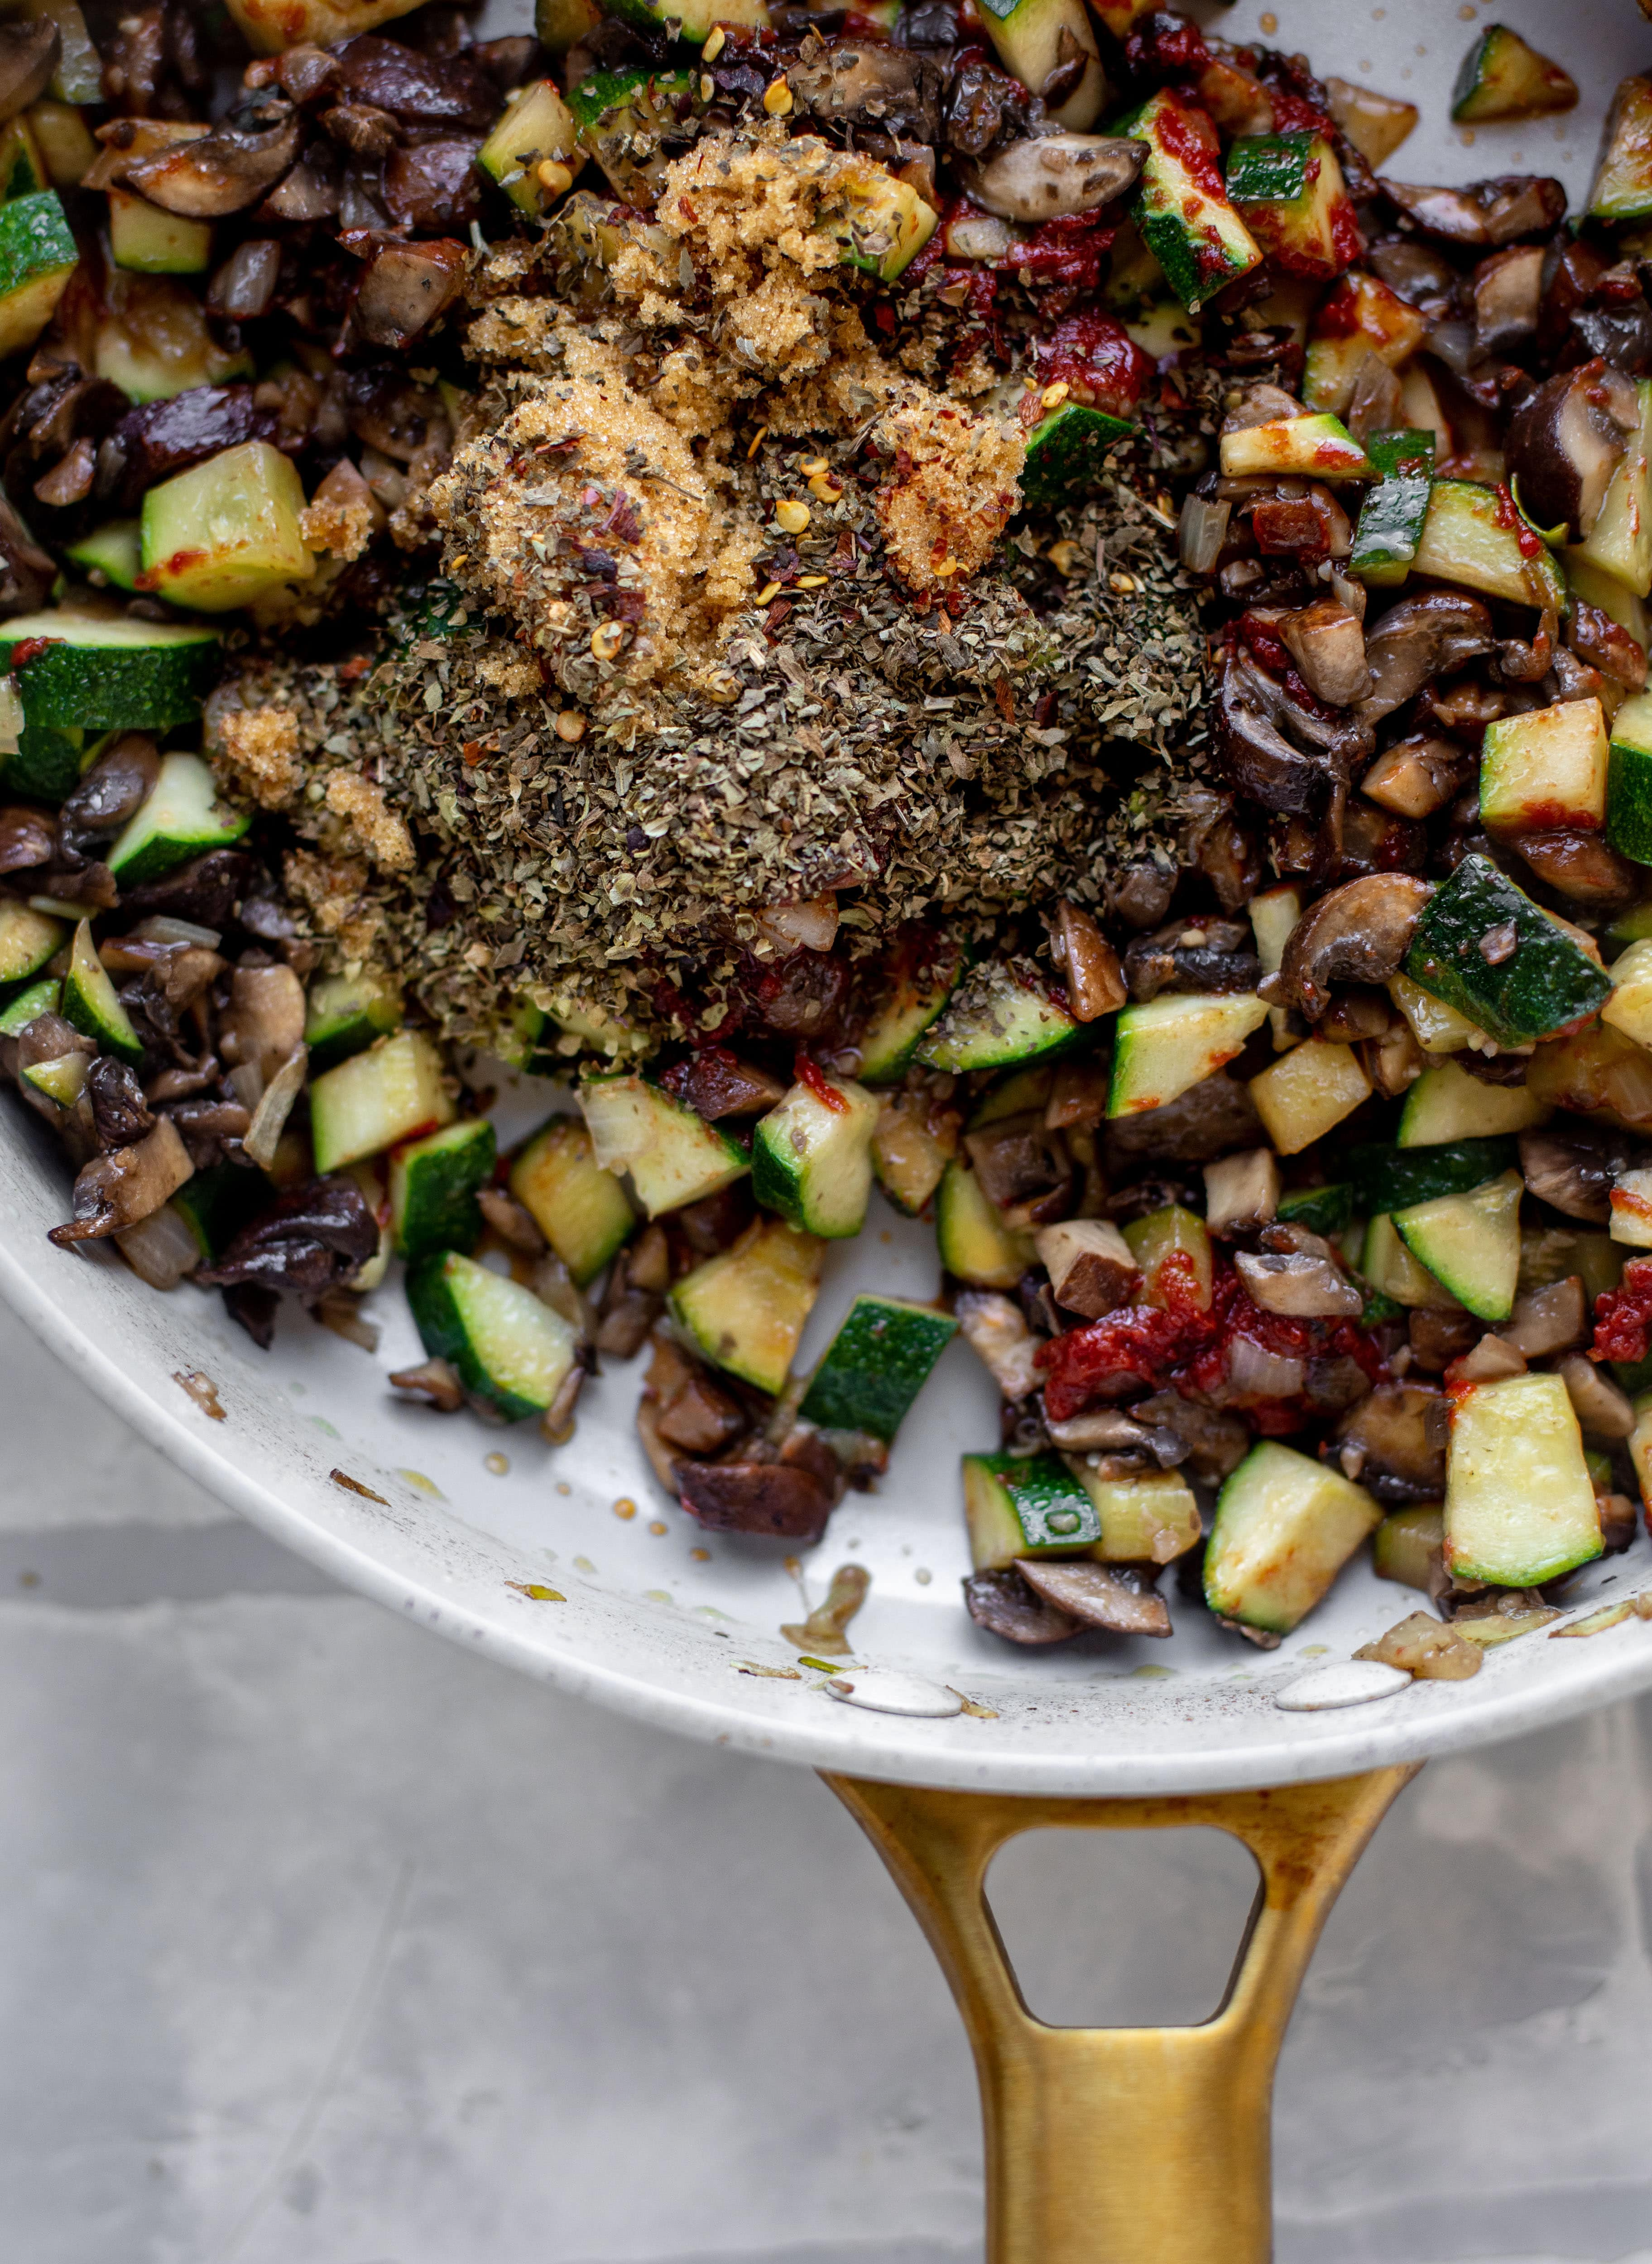 spices with zucchini and mushrooms in a skillet